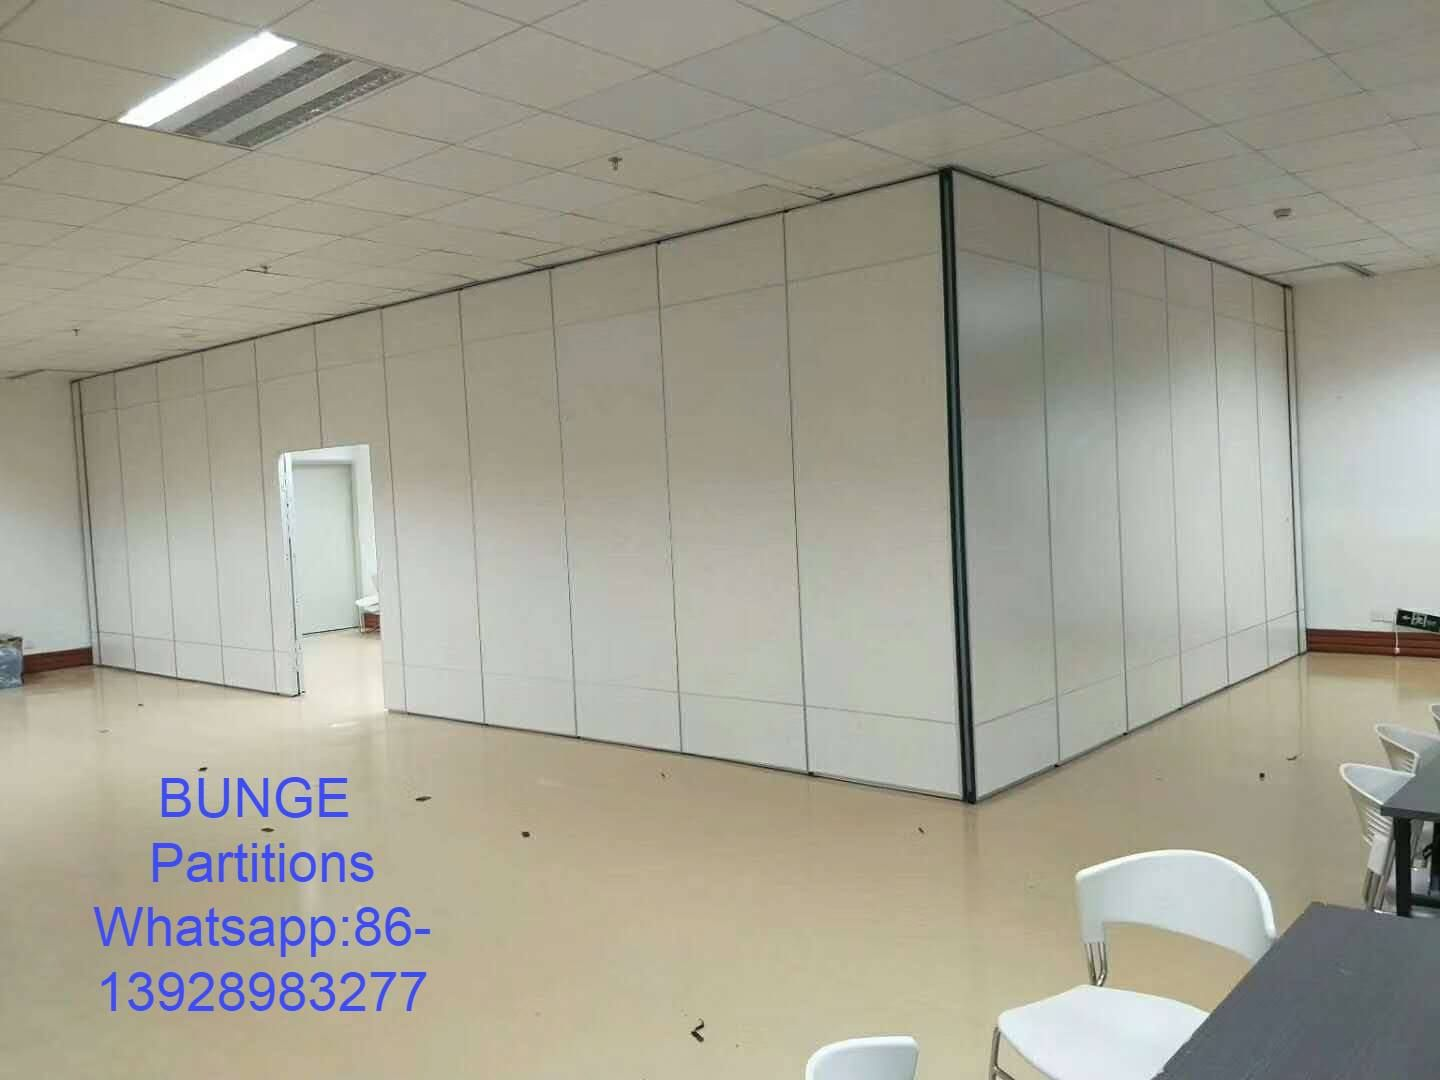 Bunge Movable Partition Walls Used In Training Room When You Do